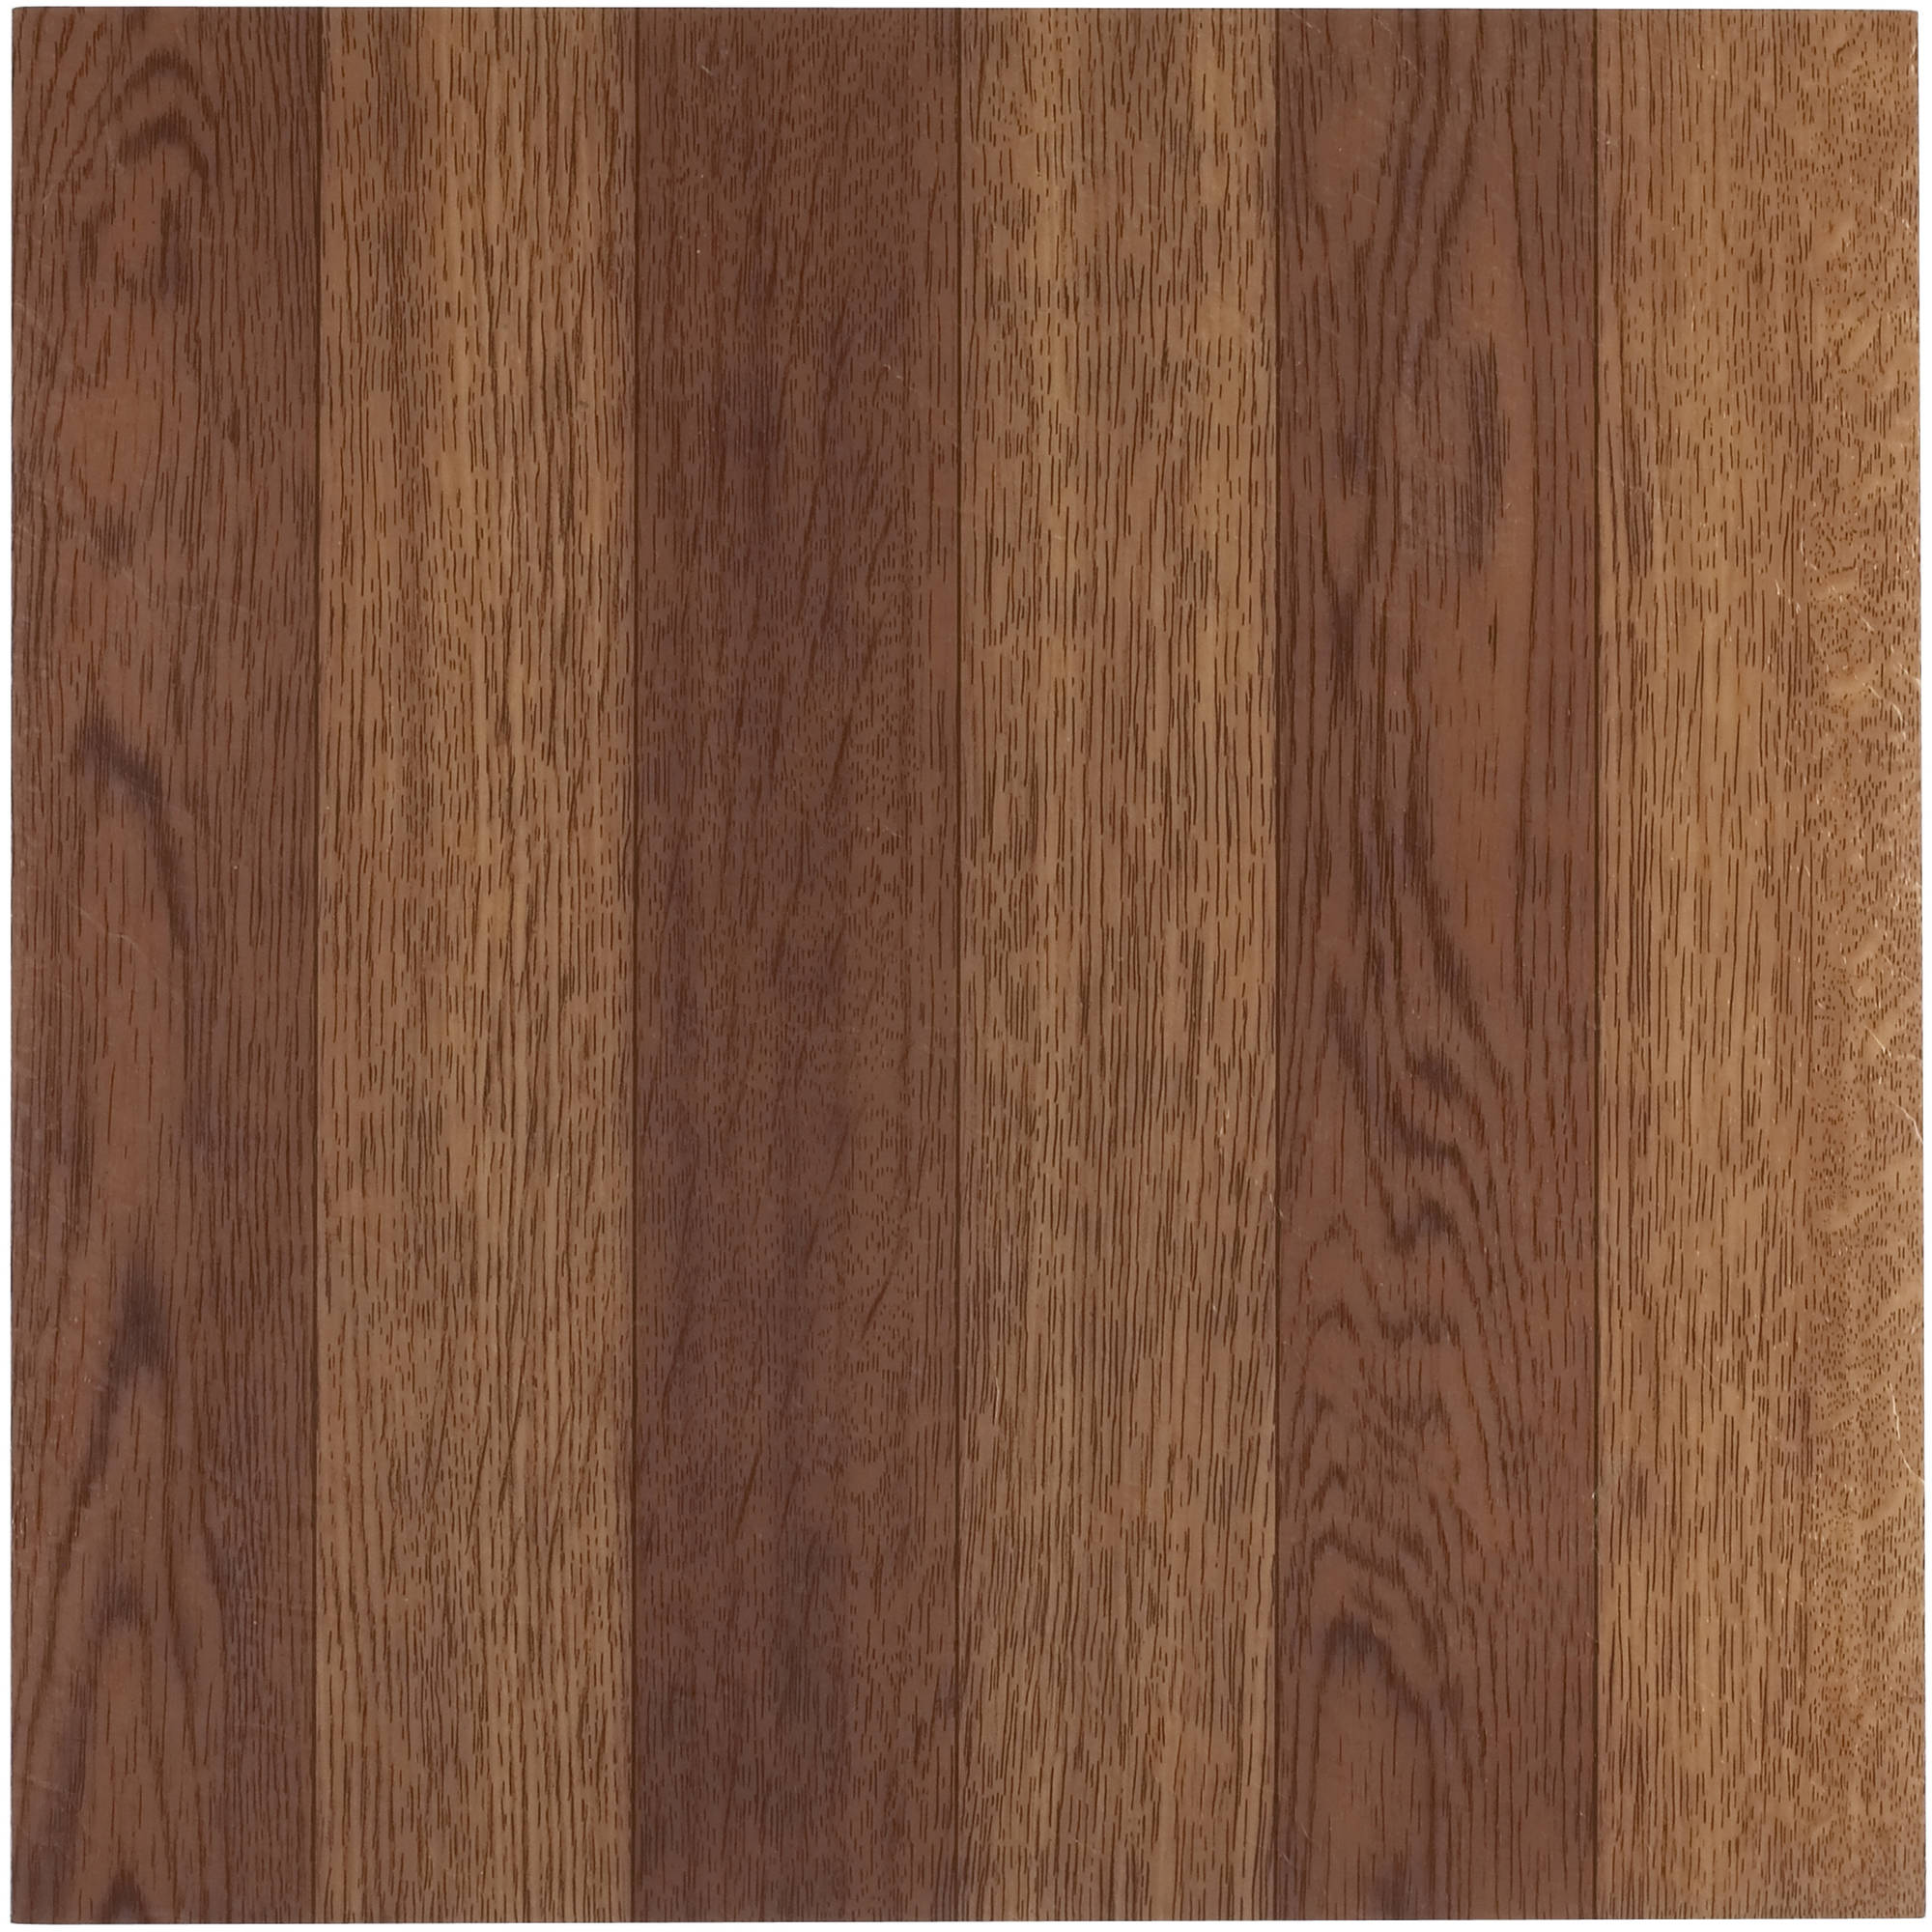 Tivoli Medium Oak Plank-Look 12x12 Self Adhesive Vinyl Floor Tile - 45 Tiles/45 Sq.Ft.